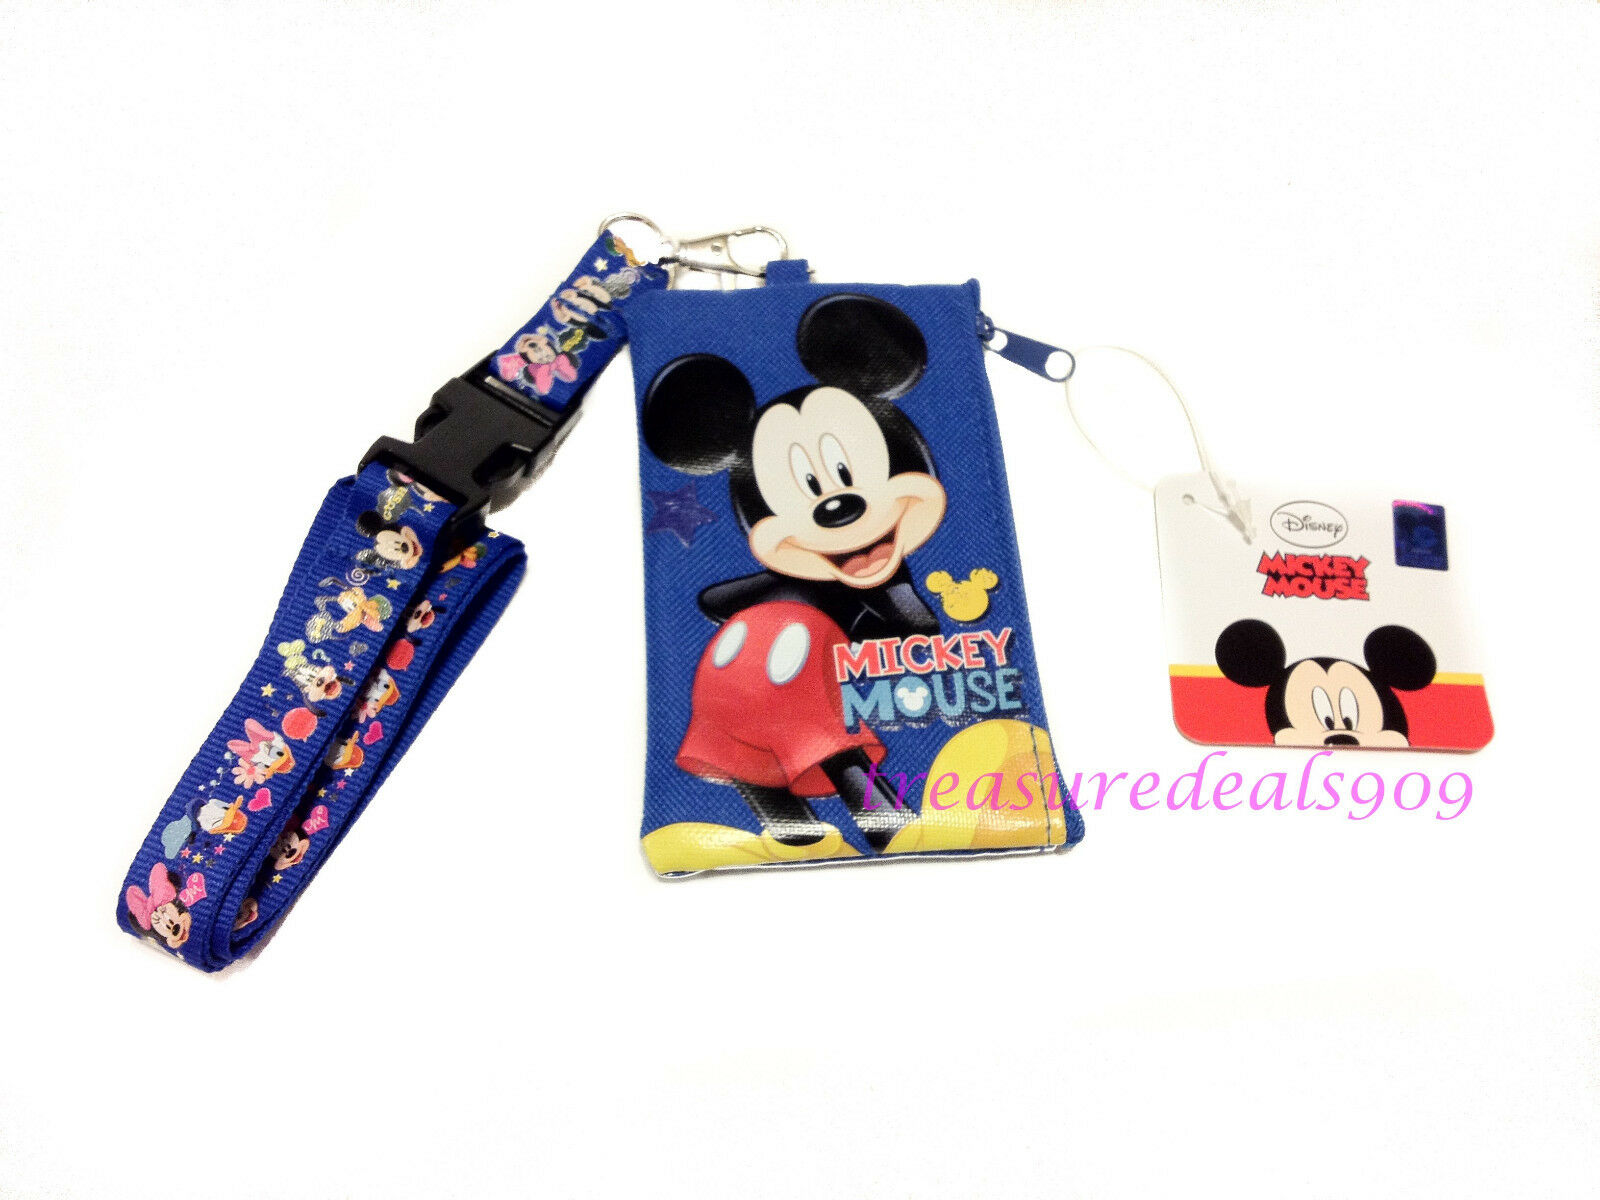 Disney Collection KeyChain Lanyard Fastpass ID Ticket Holders